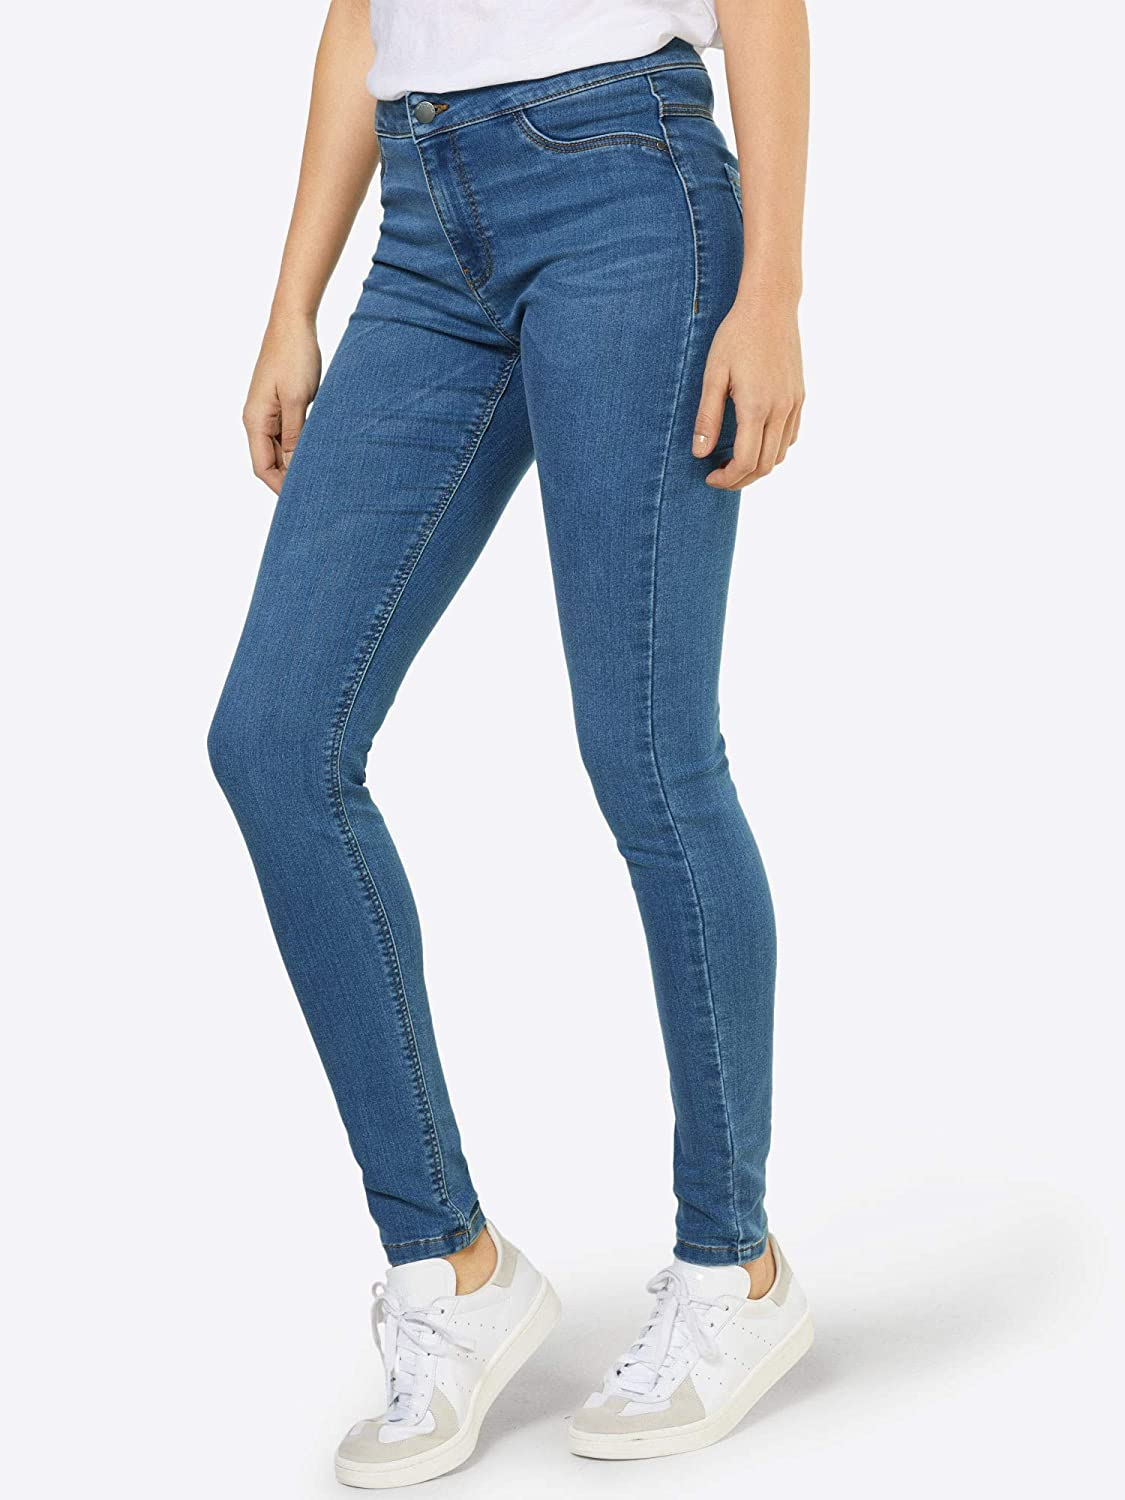 JDY BY ONLY 15161197 Pantalones Vaqueros Mujer